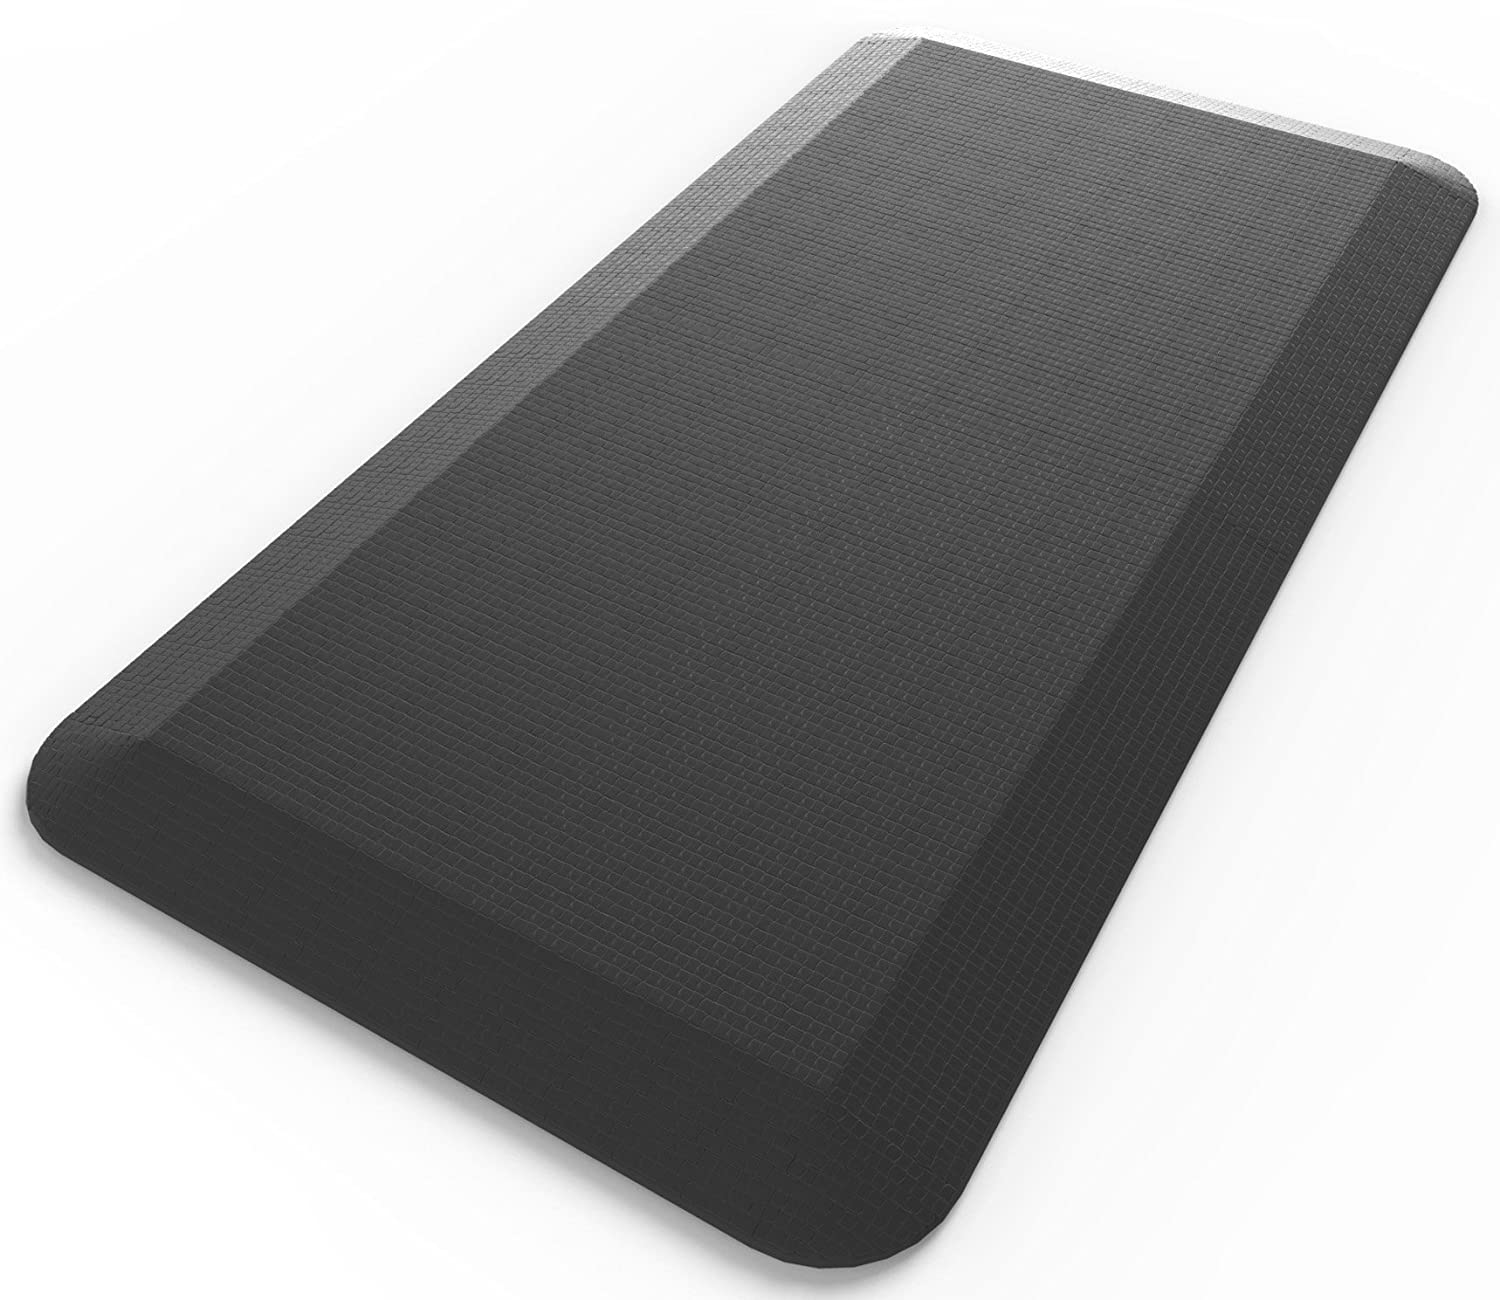 Royal Anti-Fatigue Comfort Mat - 20 in x 39 in x 3/4 in - Ergonomic Multi Surface, Non-Slip